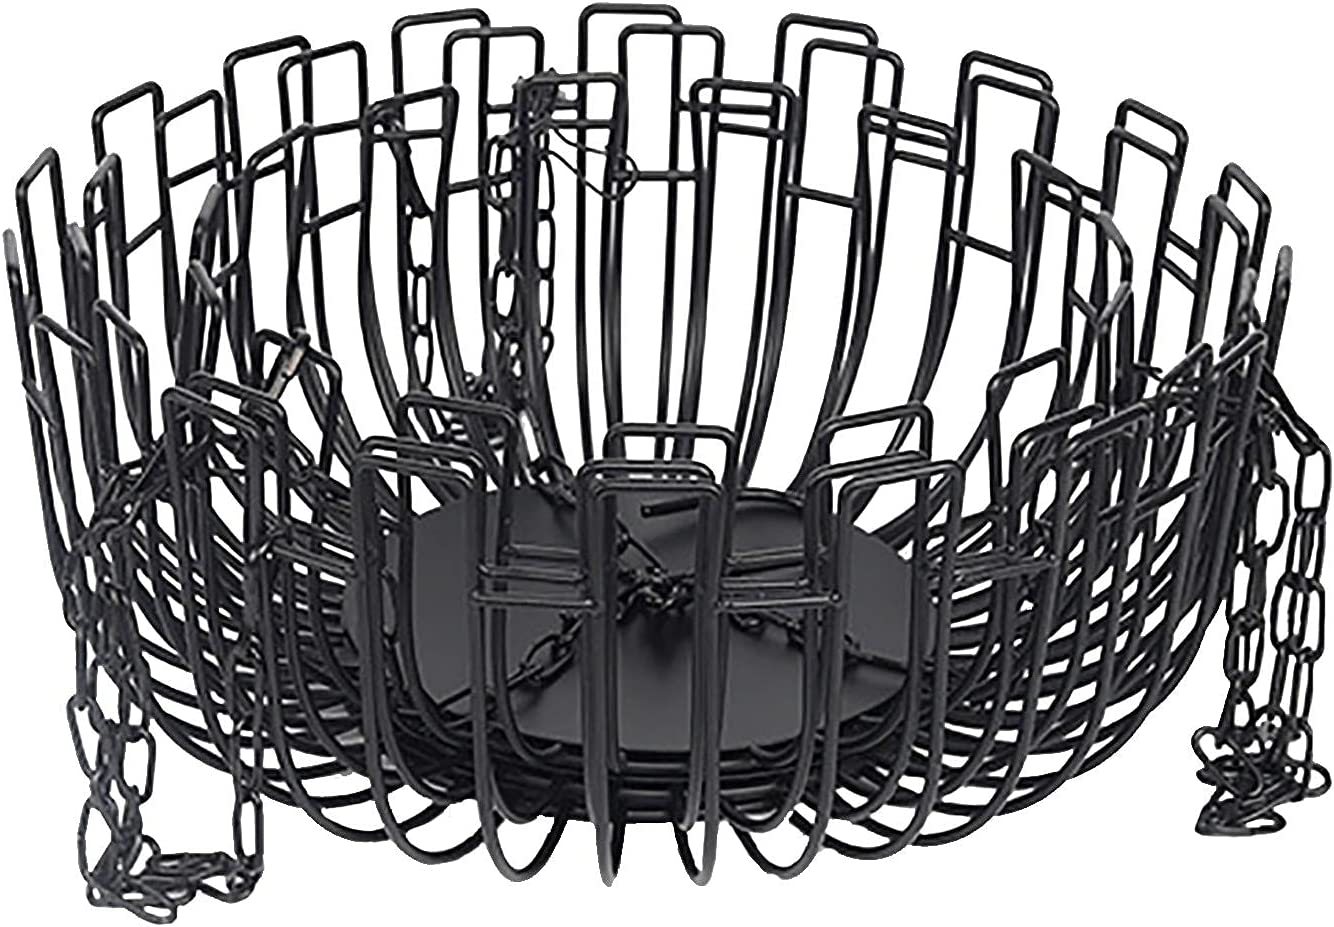 3 Tier Wire Hanging Basket Heavy Translated Duty Max 64% OFF Vegetable Kitch Fruit Rack